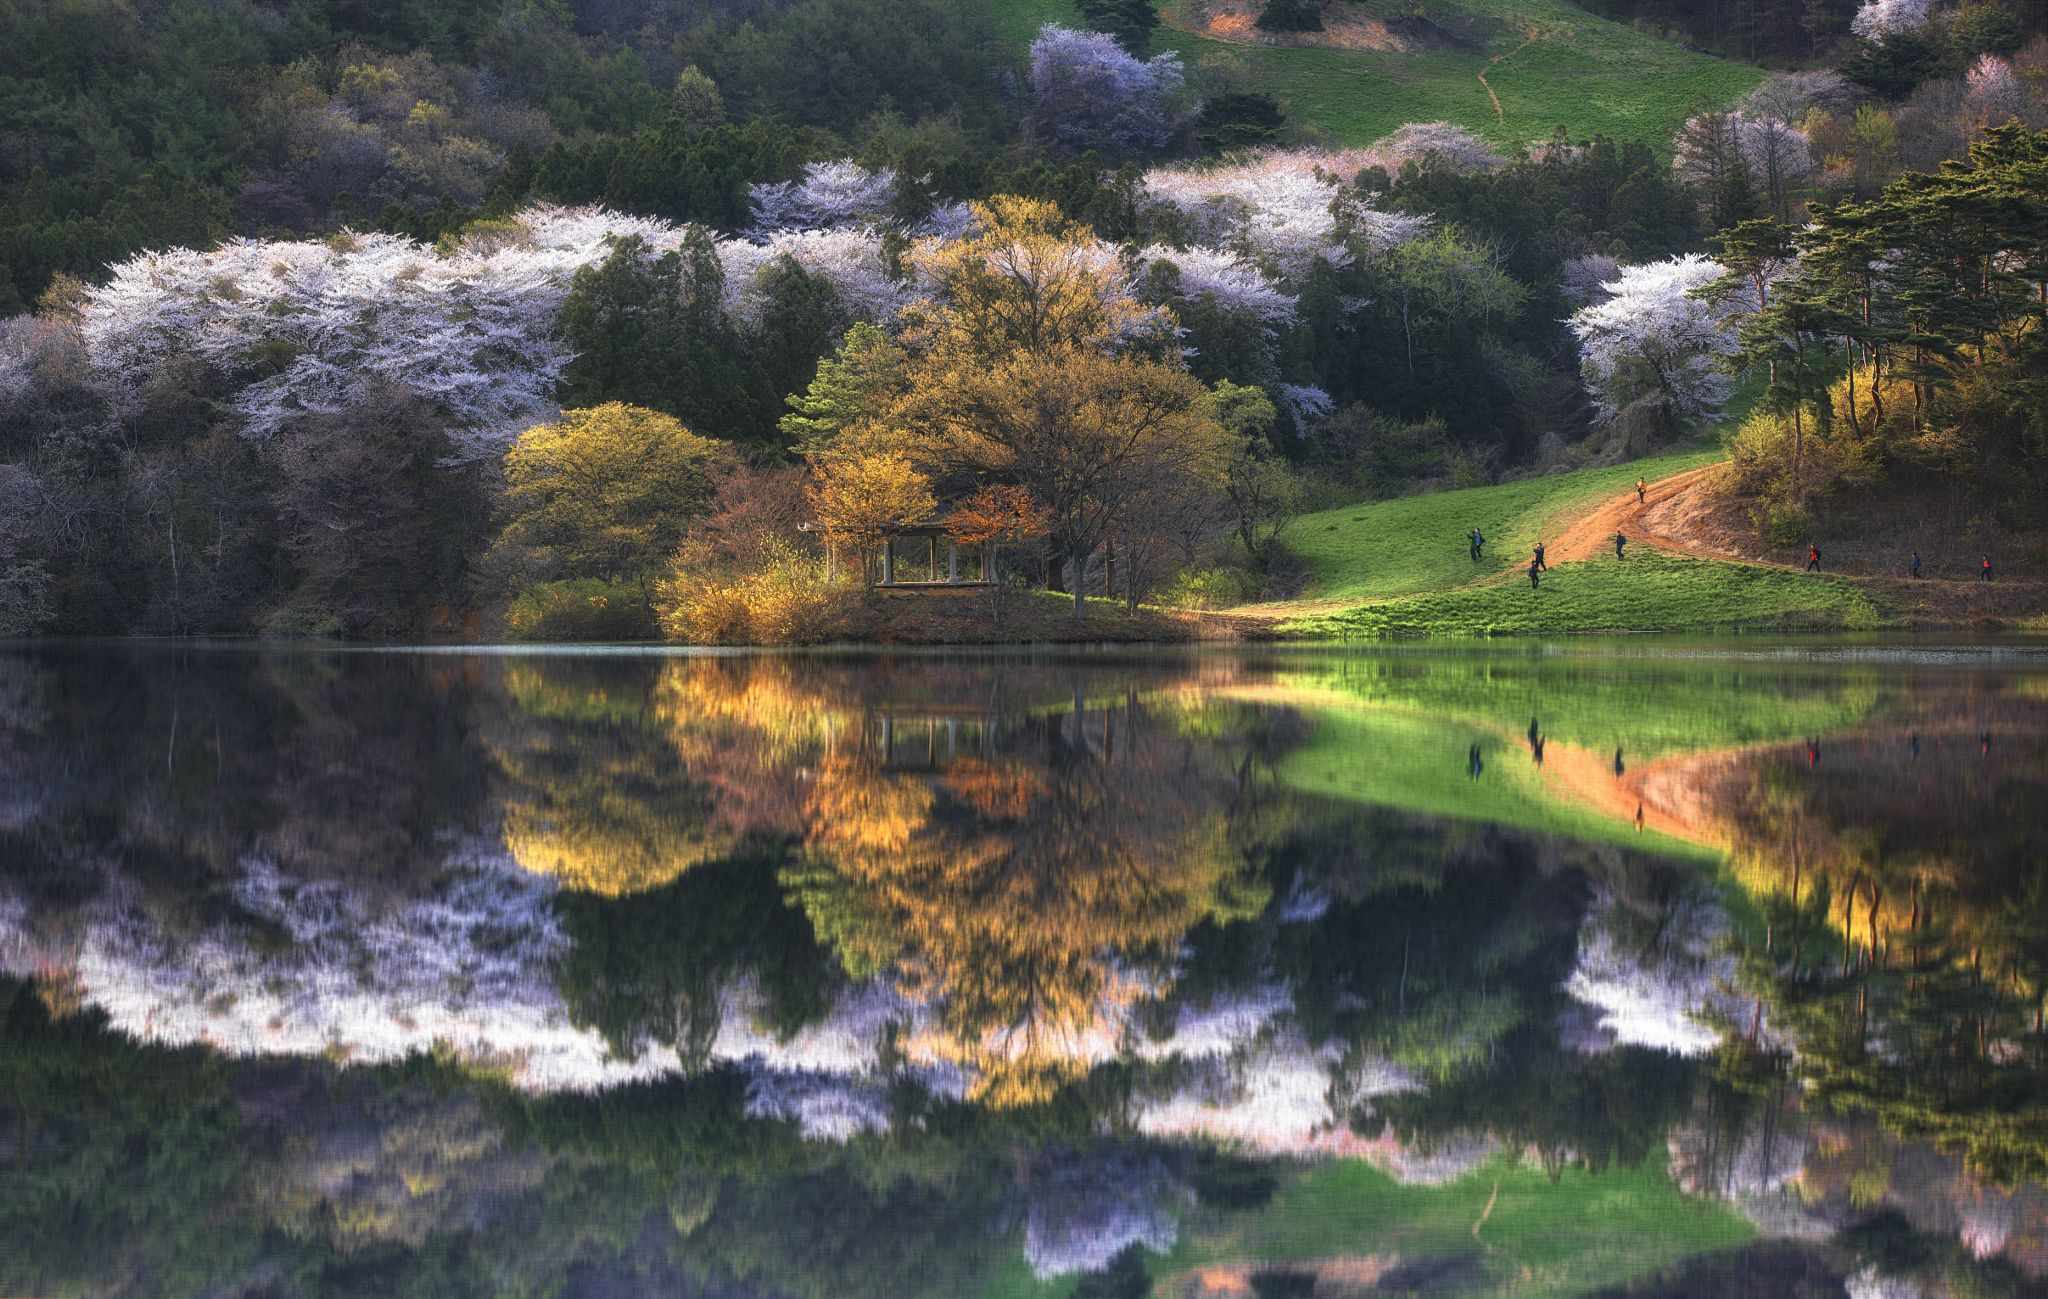 Spring In Yongbi Lake S Korea X By Jae Youn Ryu - The beauty of south korea captured in stunning reflective landscape photography